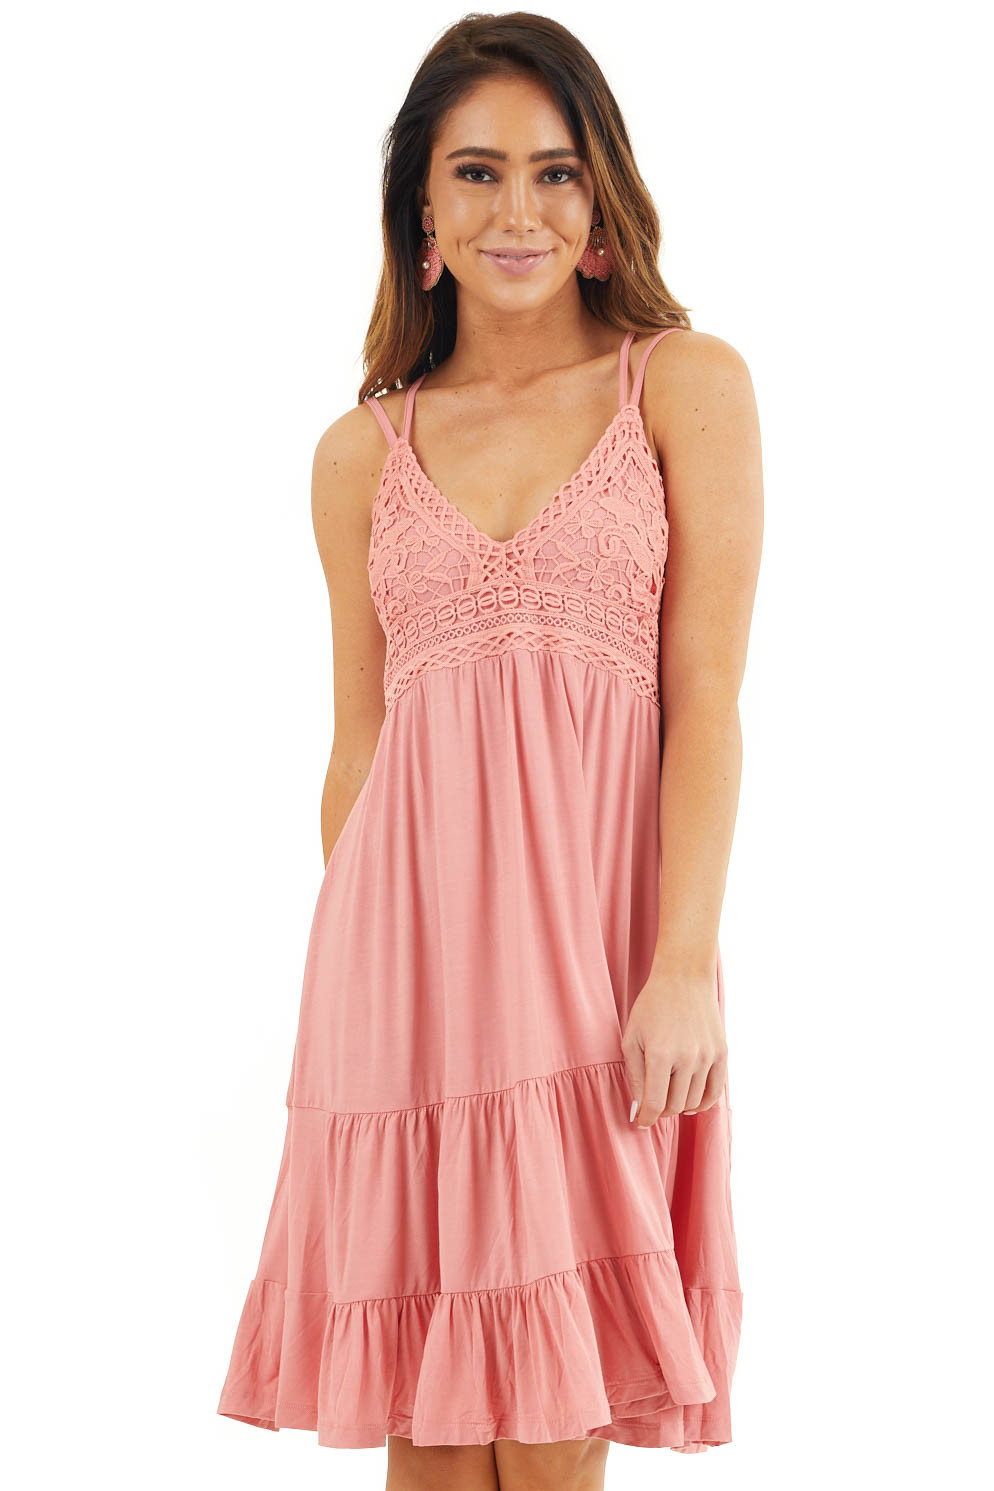 Coral Dress with Crochet Lace Bodice and Criss Cross Back